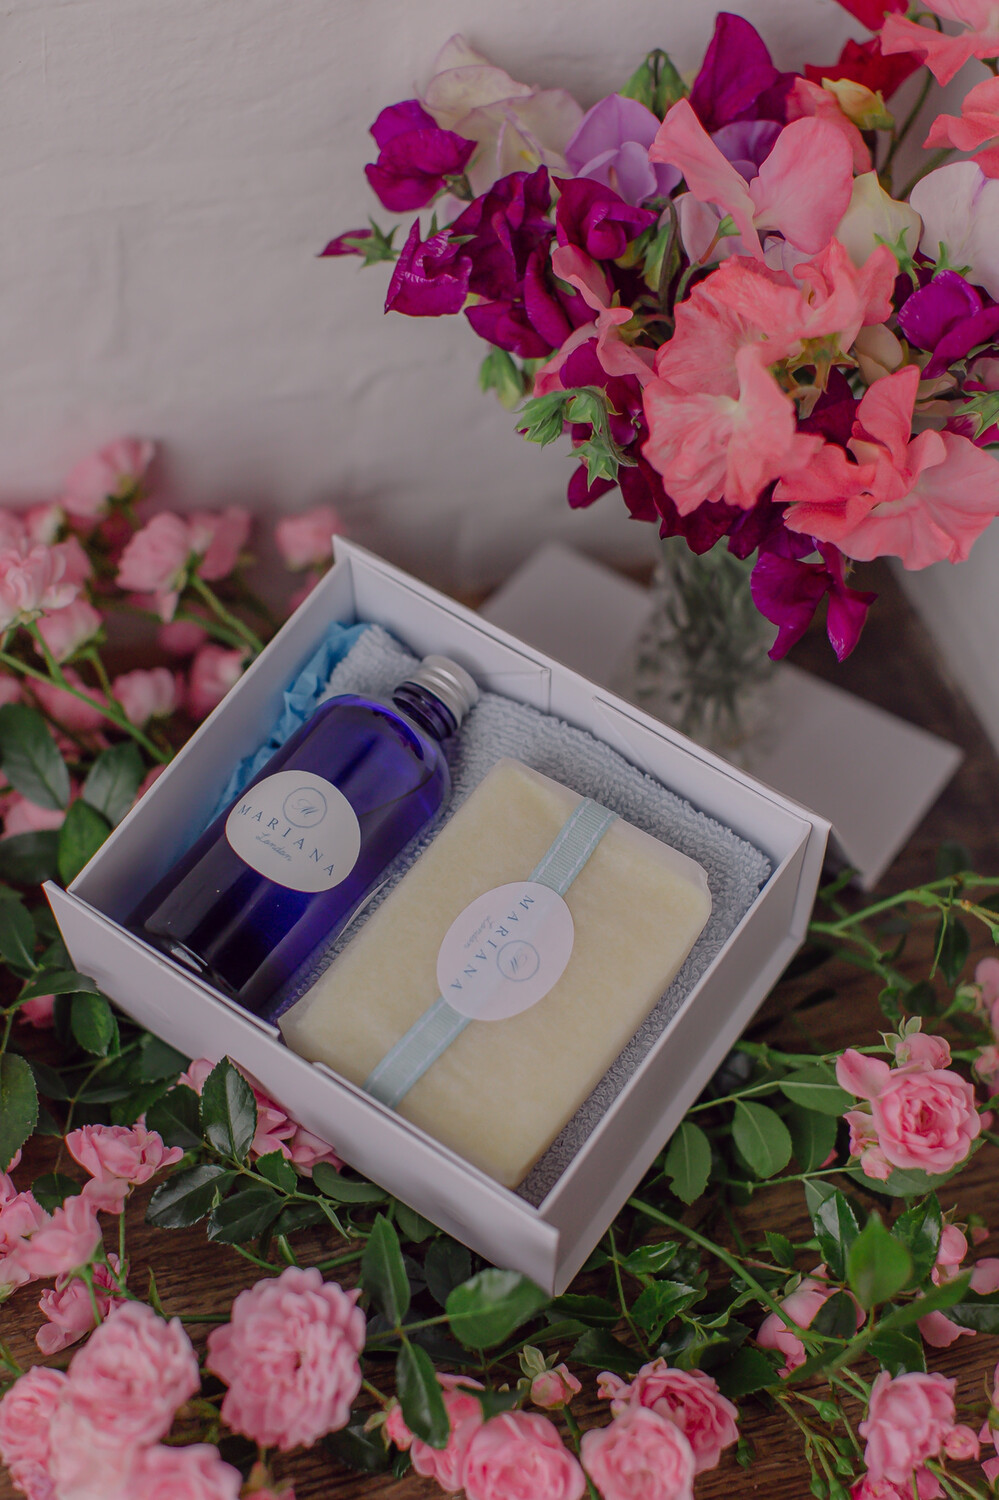 Rosemary and Melissa Deluxe Gift Box  *New fragrance for 2021*